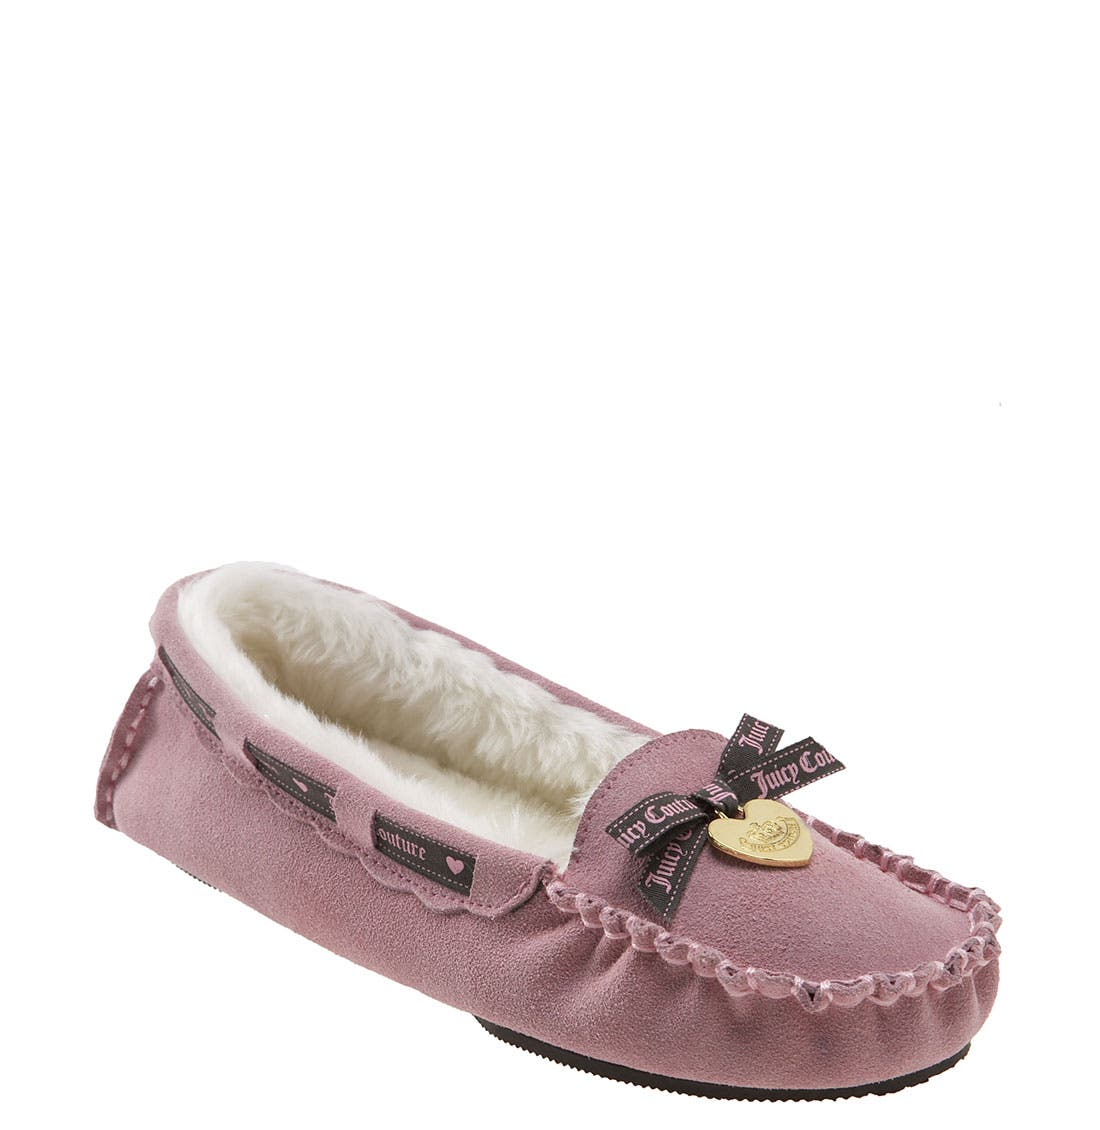 Alternate Image 1 Selected - Juicy Couture 'Sleepy' Moccasin Slipper